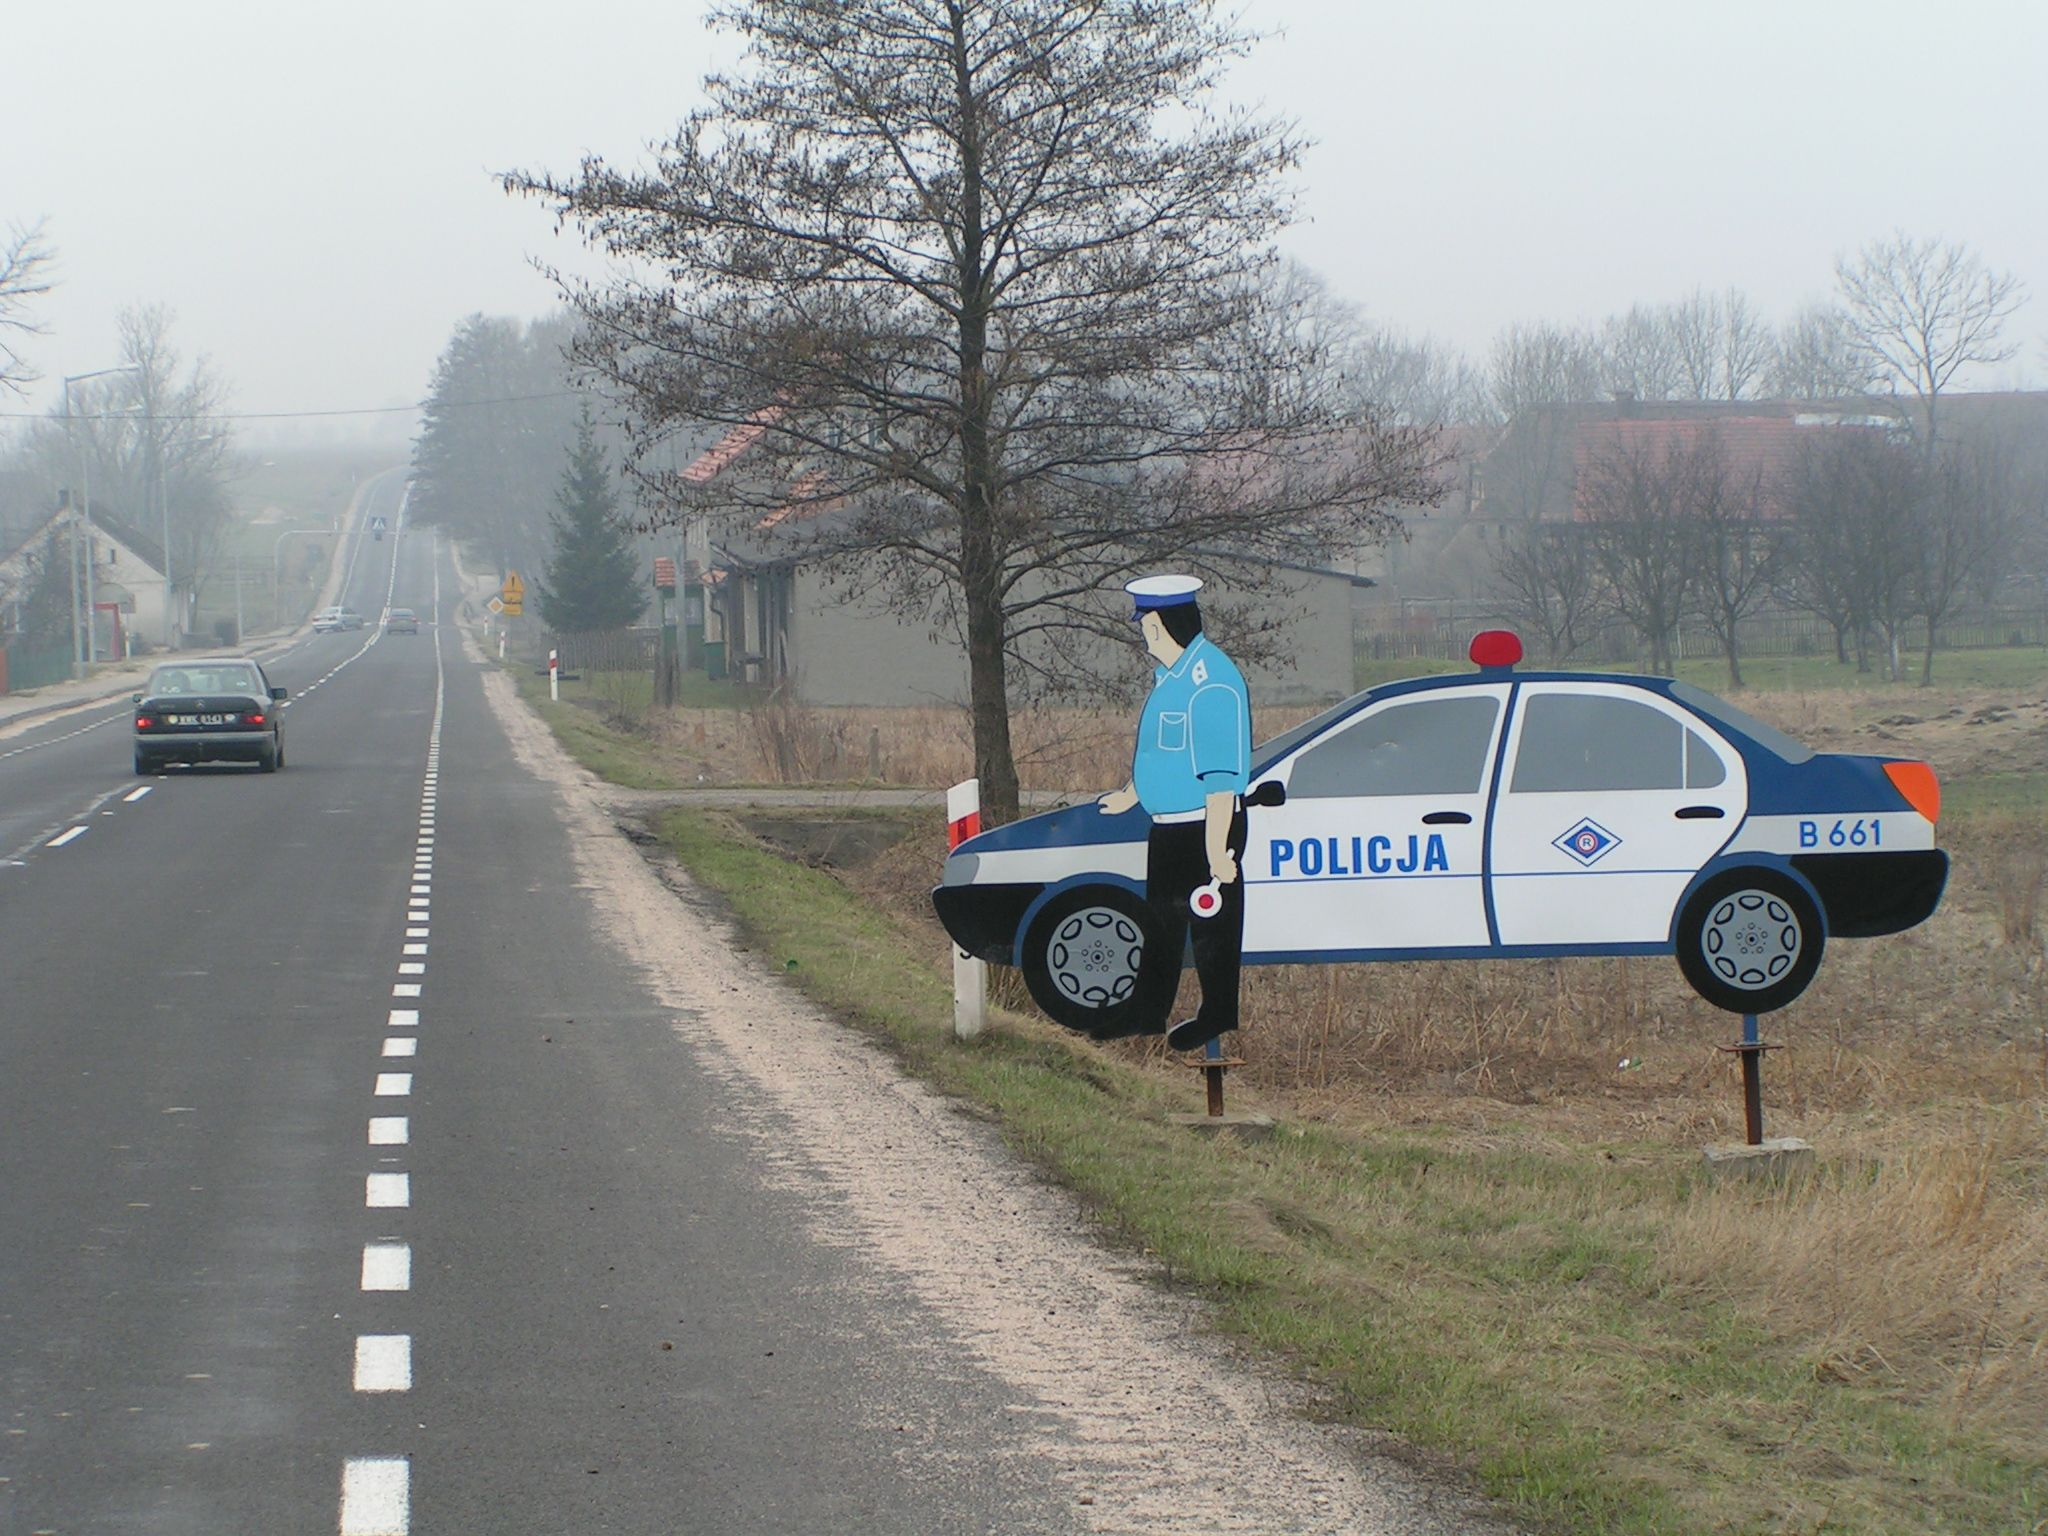 File:Dummy of a police car.jpg - Wikimedia Commons